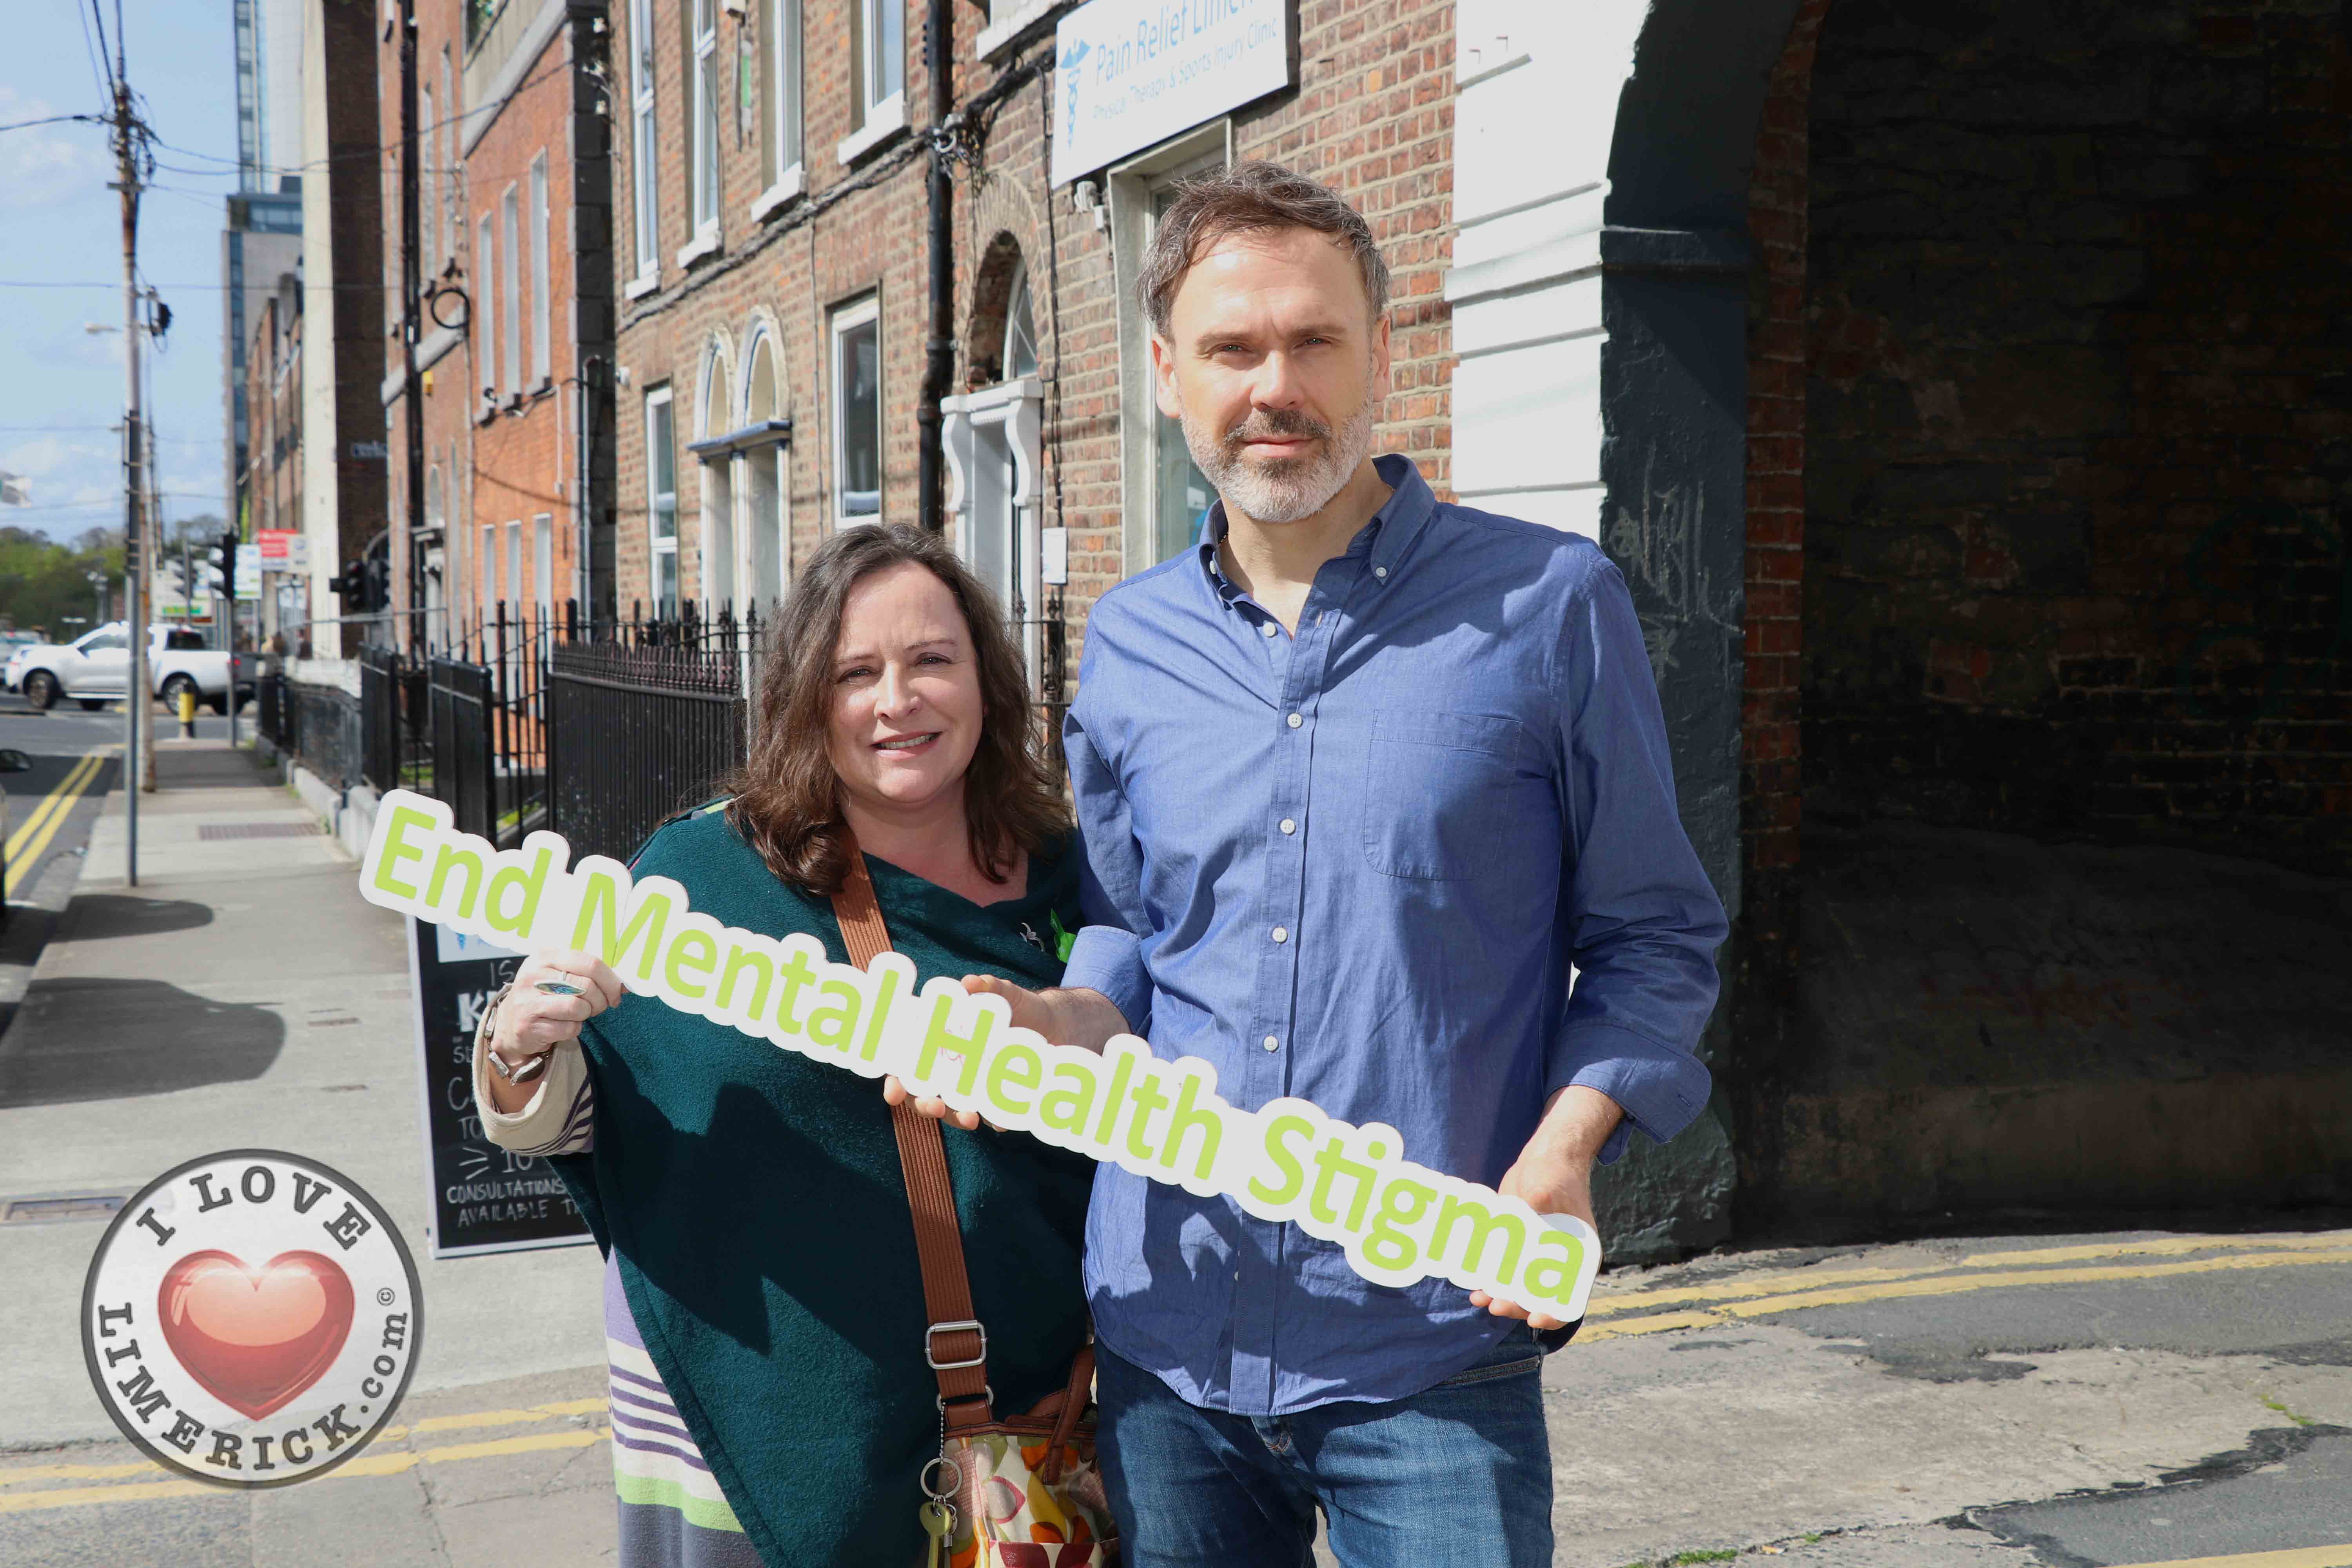 Pictured at the EmployAbility Limerick Office for the launch of the upcoming Green Ribbon campaign and 'Time to talk' day on Tuesday May 7th are Amanda Clifford, A.B.C for Mental Health, and Richard Lynch, founder of ilovelimerick.com. Picture: Conor Owens/ilovelimerick.